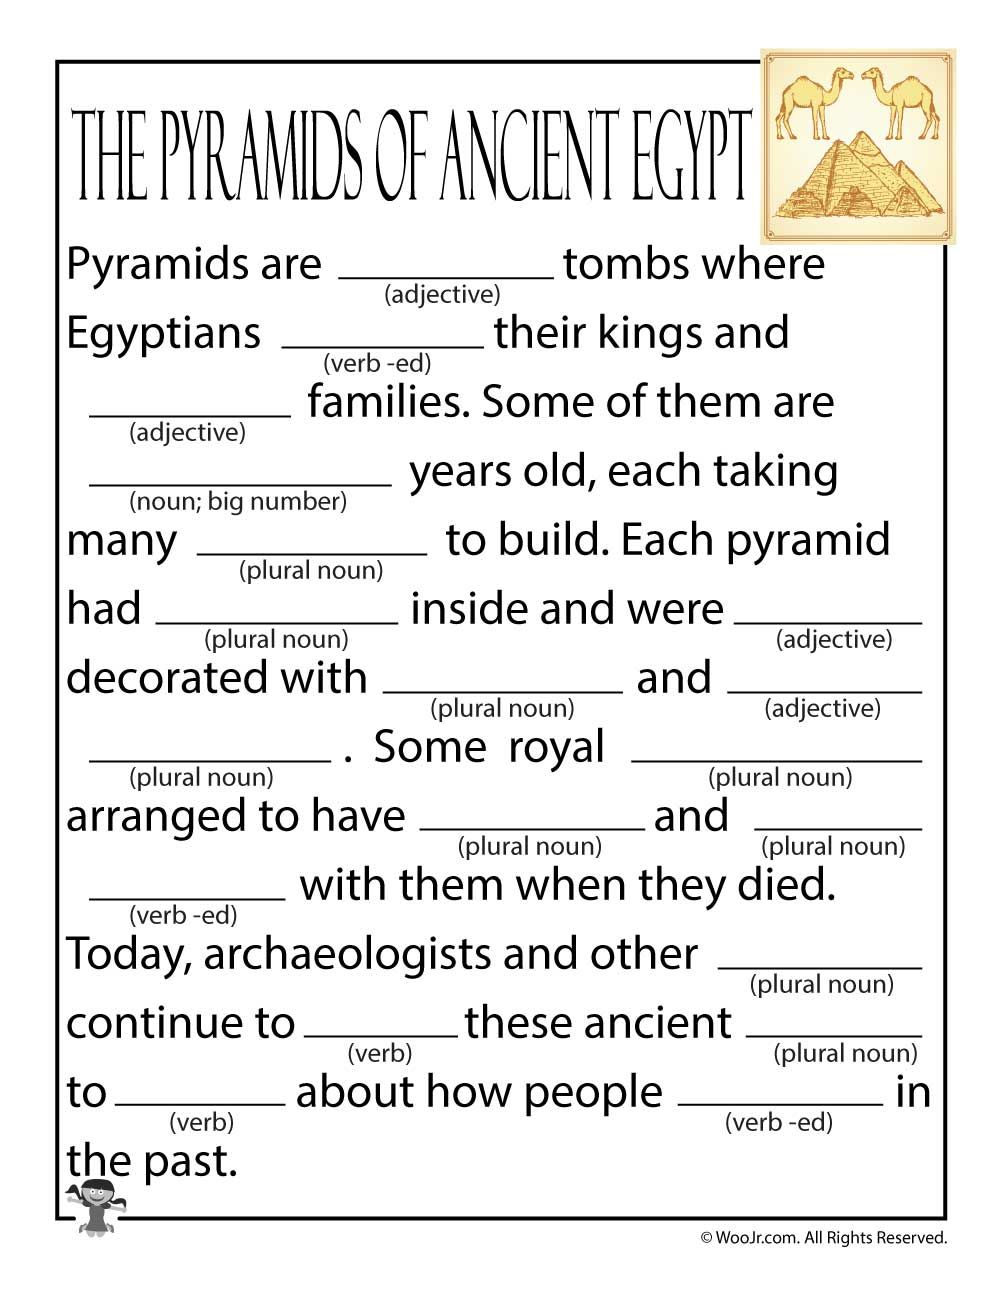 The Pyramids Of Ancient Egypt Woo Jr Kids Activities Ancient Egypt For Kids Ancient Egypt Activities Egypt Activities [ 1294 x 1000 Pixel ]